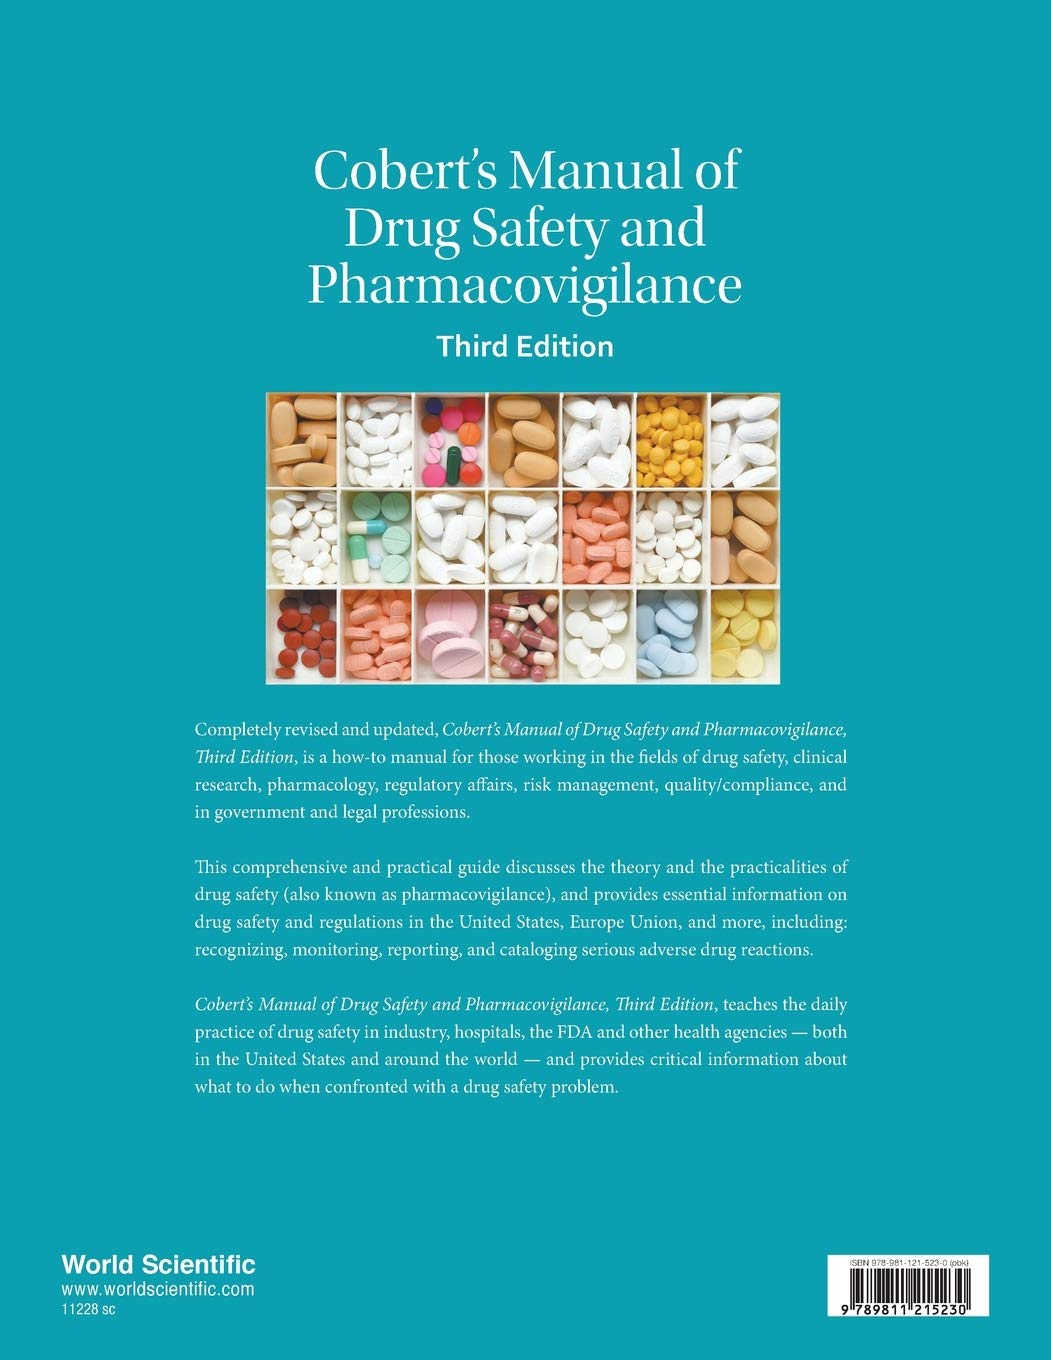 Cobert S Manual Of Drug Safety And Pharmacovigilance 3rd Edition Barton Cobert William W Gregory Jean Loup Thomas 9789811215230 Amazon Com Books